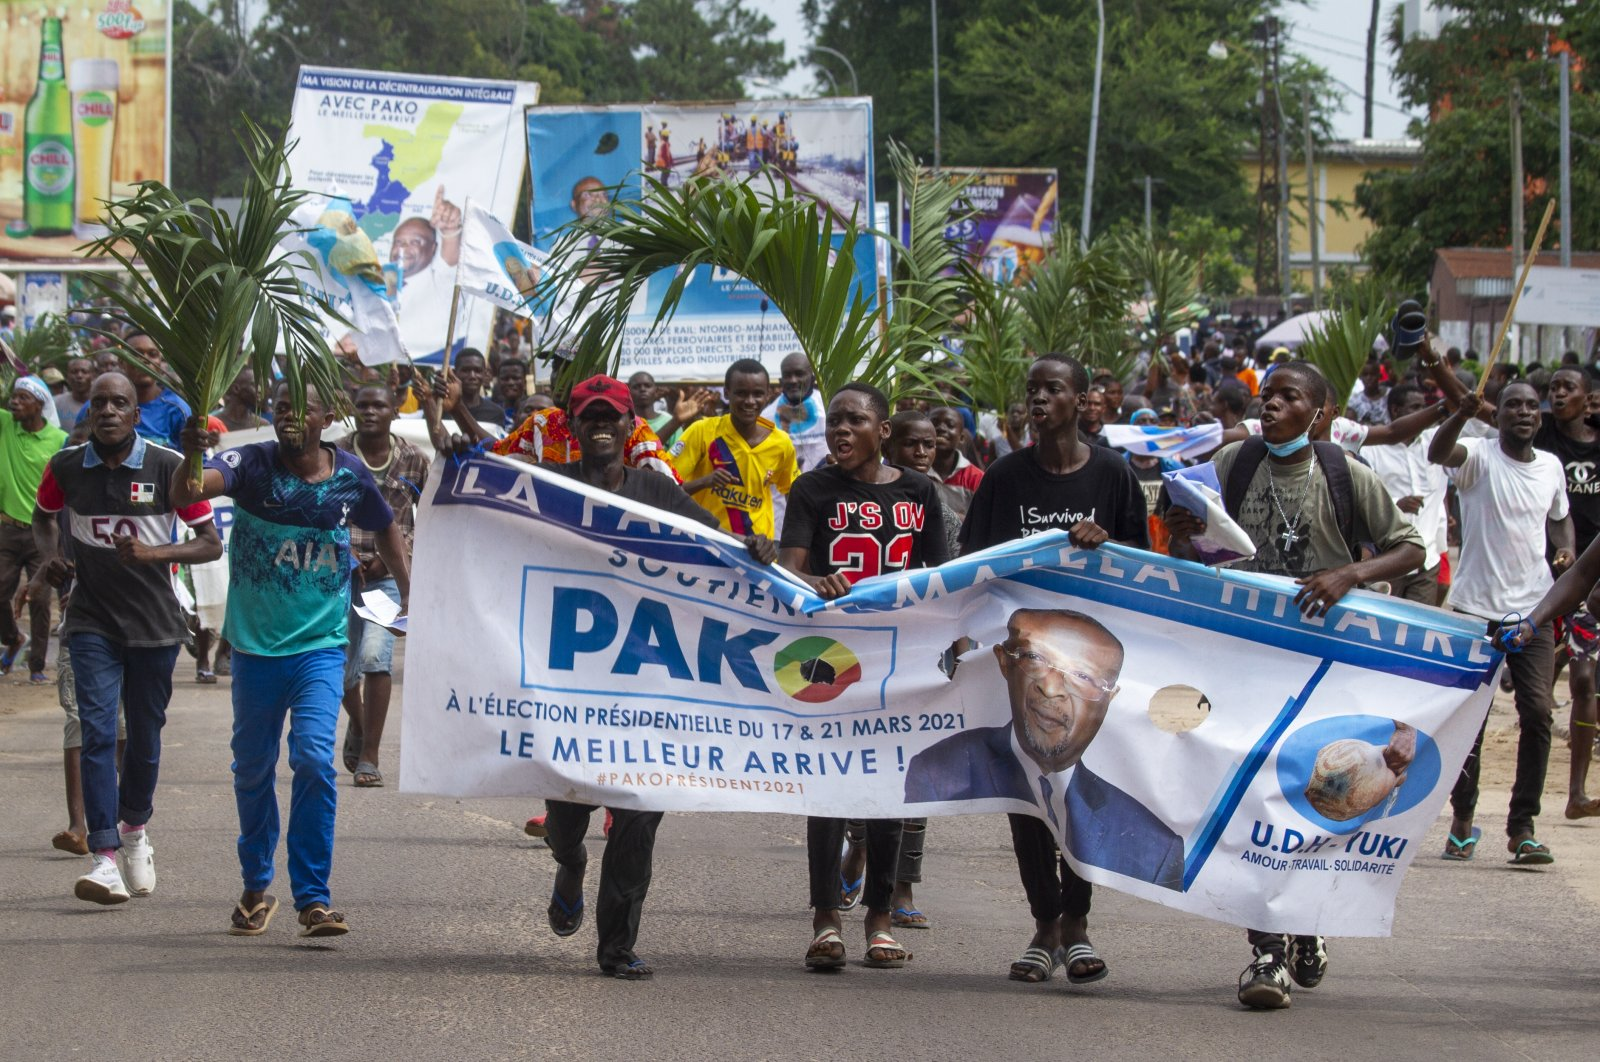 Supporters of opposition presidential candidate Guy Brice Parfait Kolelas cheer during their party's last rally of the presidential campaign in Brazzaville, Democratic Republic of Congo (DRC), March 19, 2021. (AP Photo)